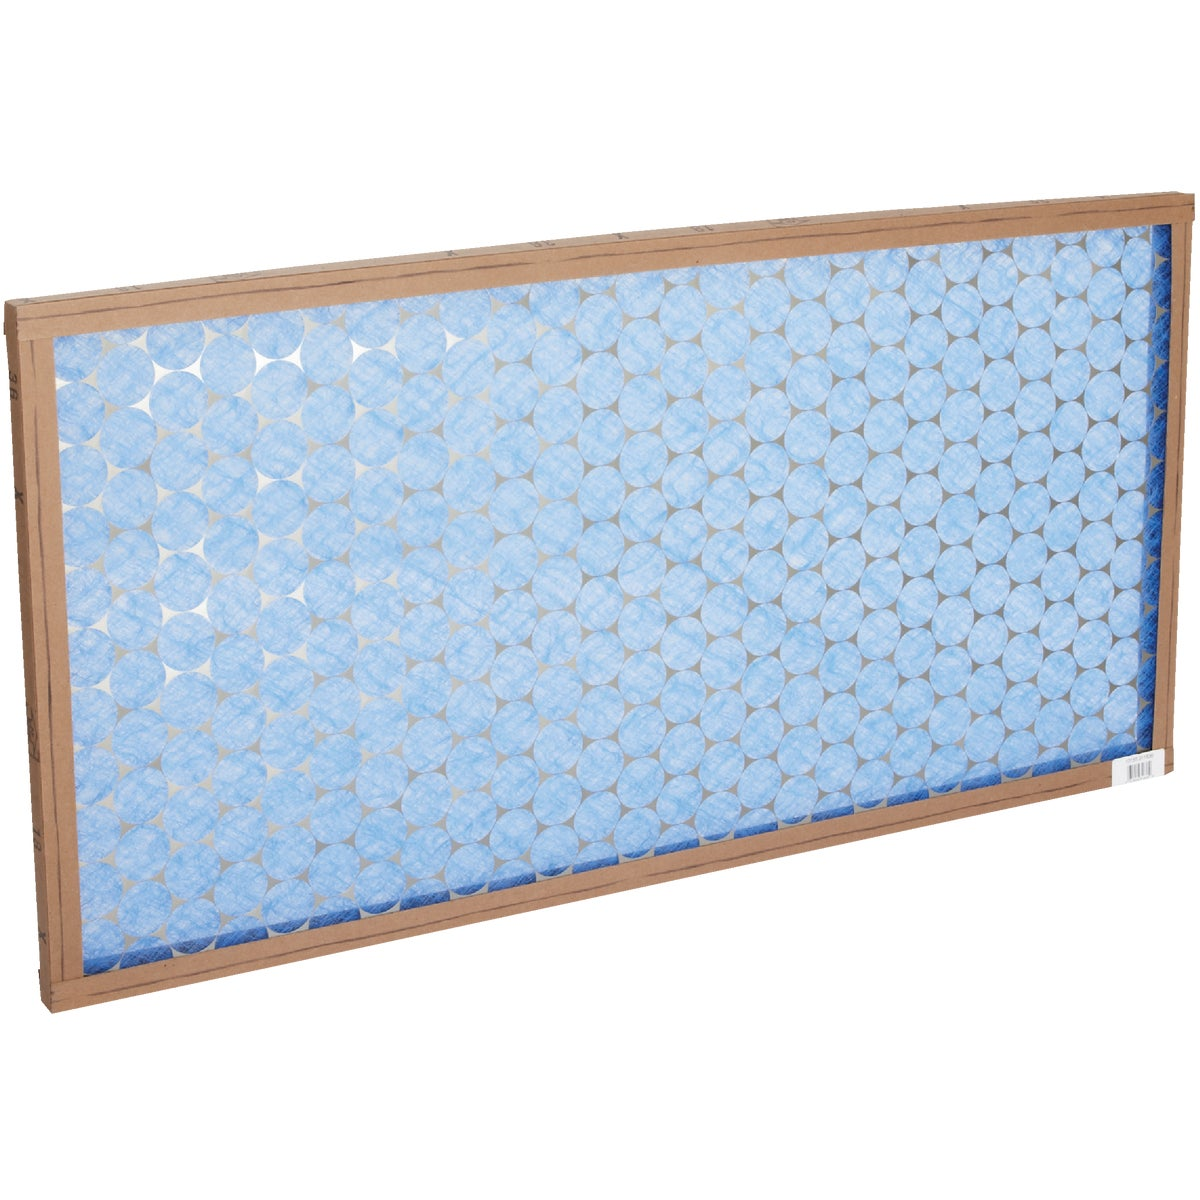 18X36X1 FBRGL AIR FILTER - 10155.011836 by Flanders Corp